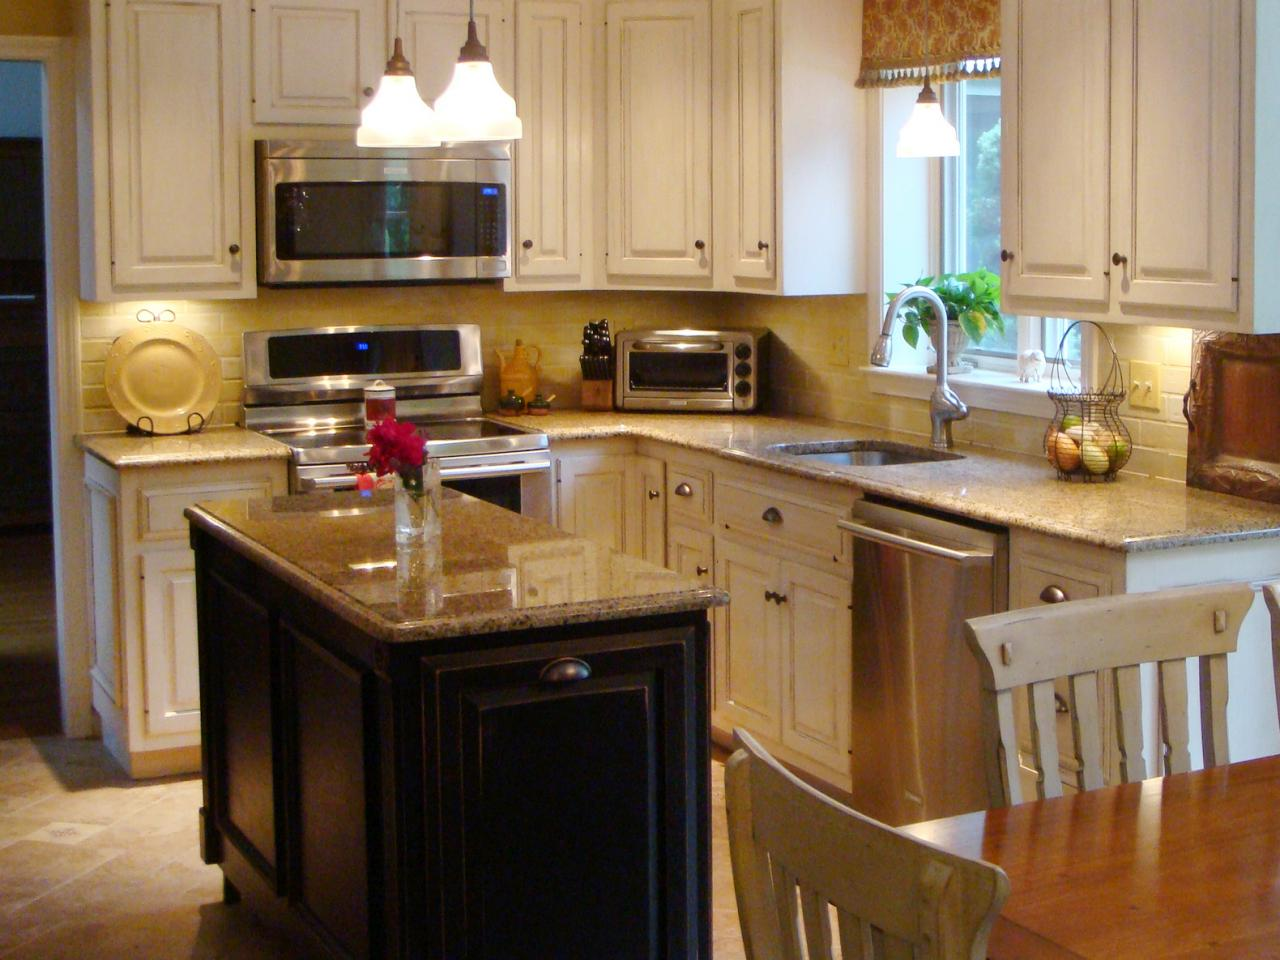 Kitchen Island Cabinets Small-Kitchen Ideas Design Pictures